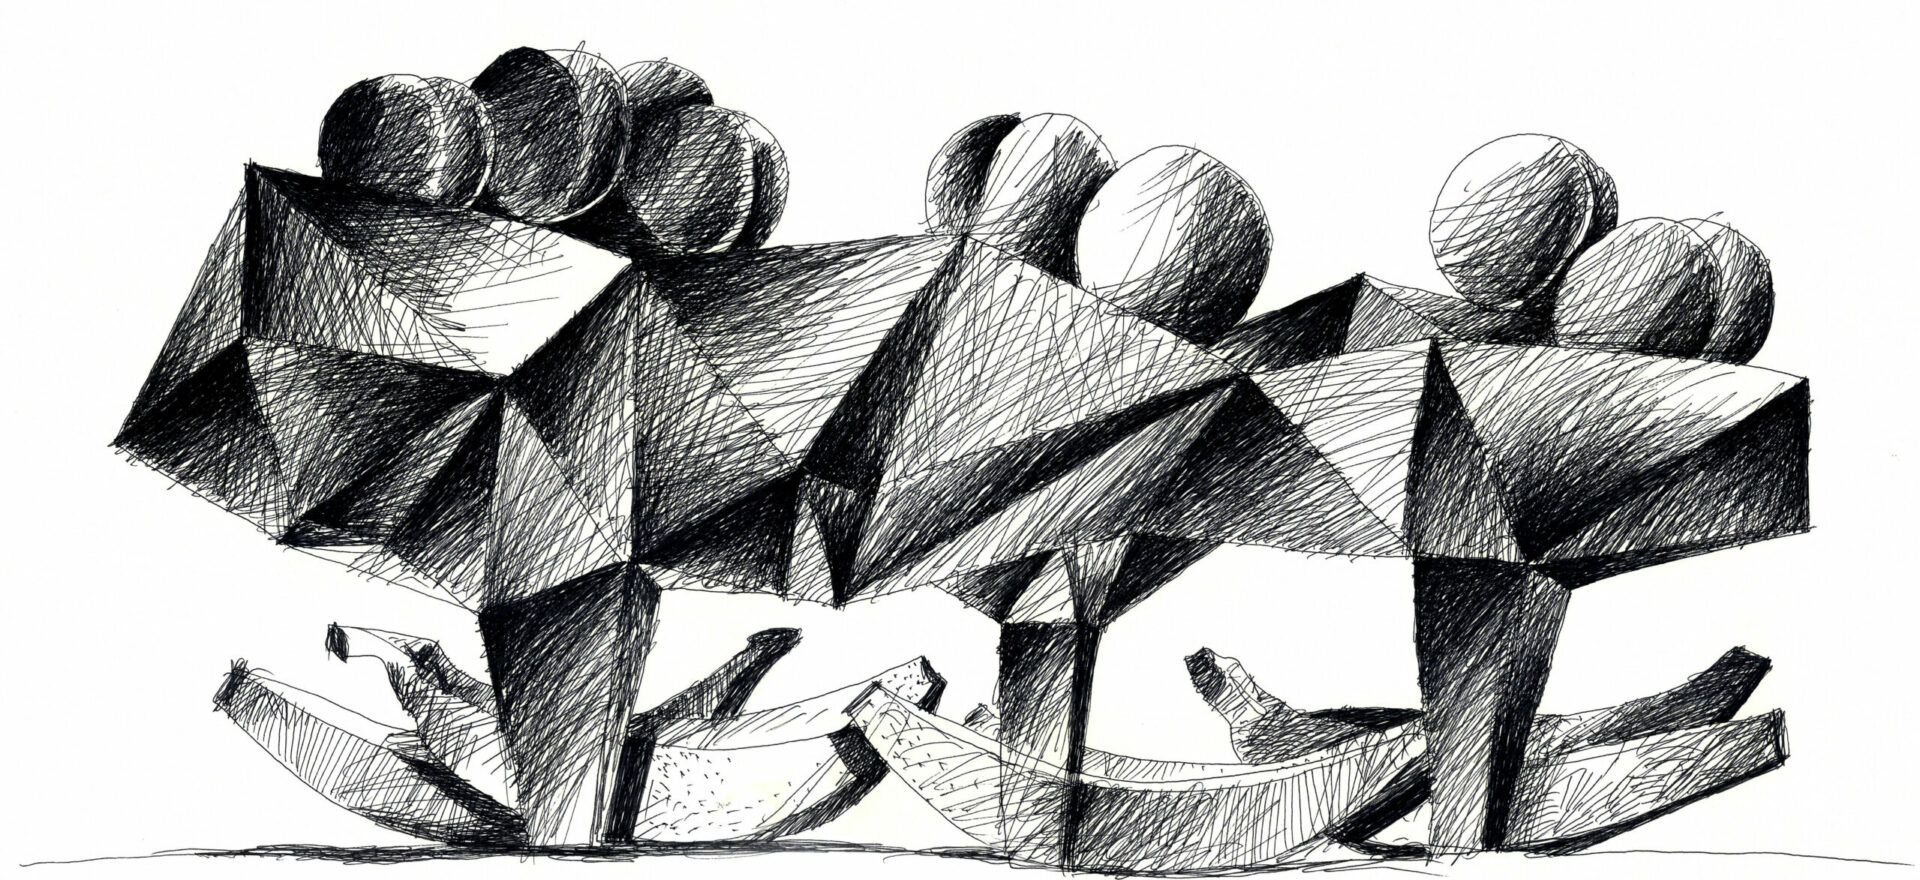 Fruits like to stay in the shade, Art Drawing by Mario Trimarchi in black ink on paper, 2015.